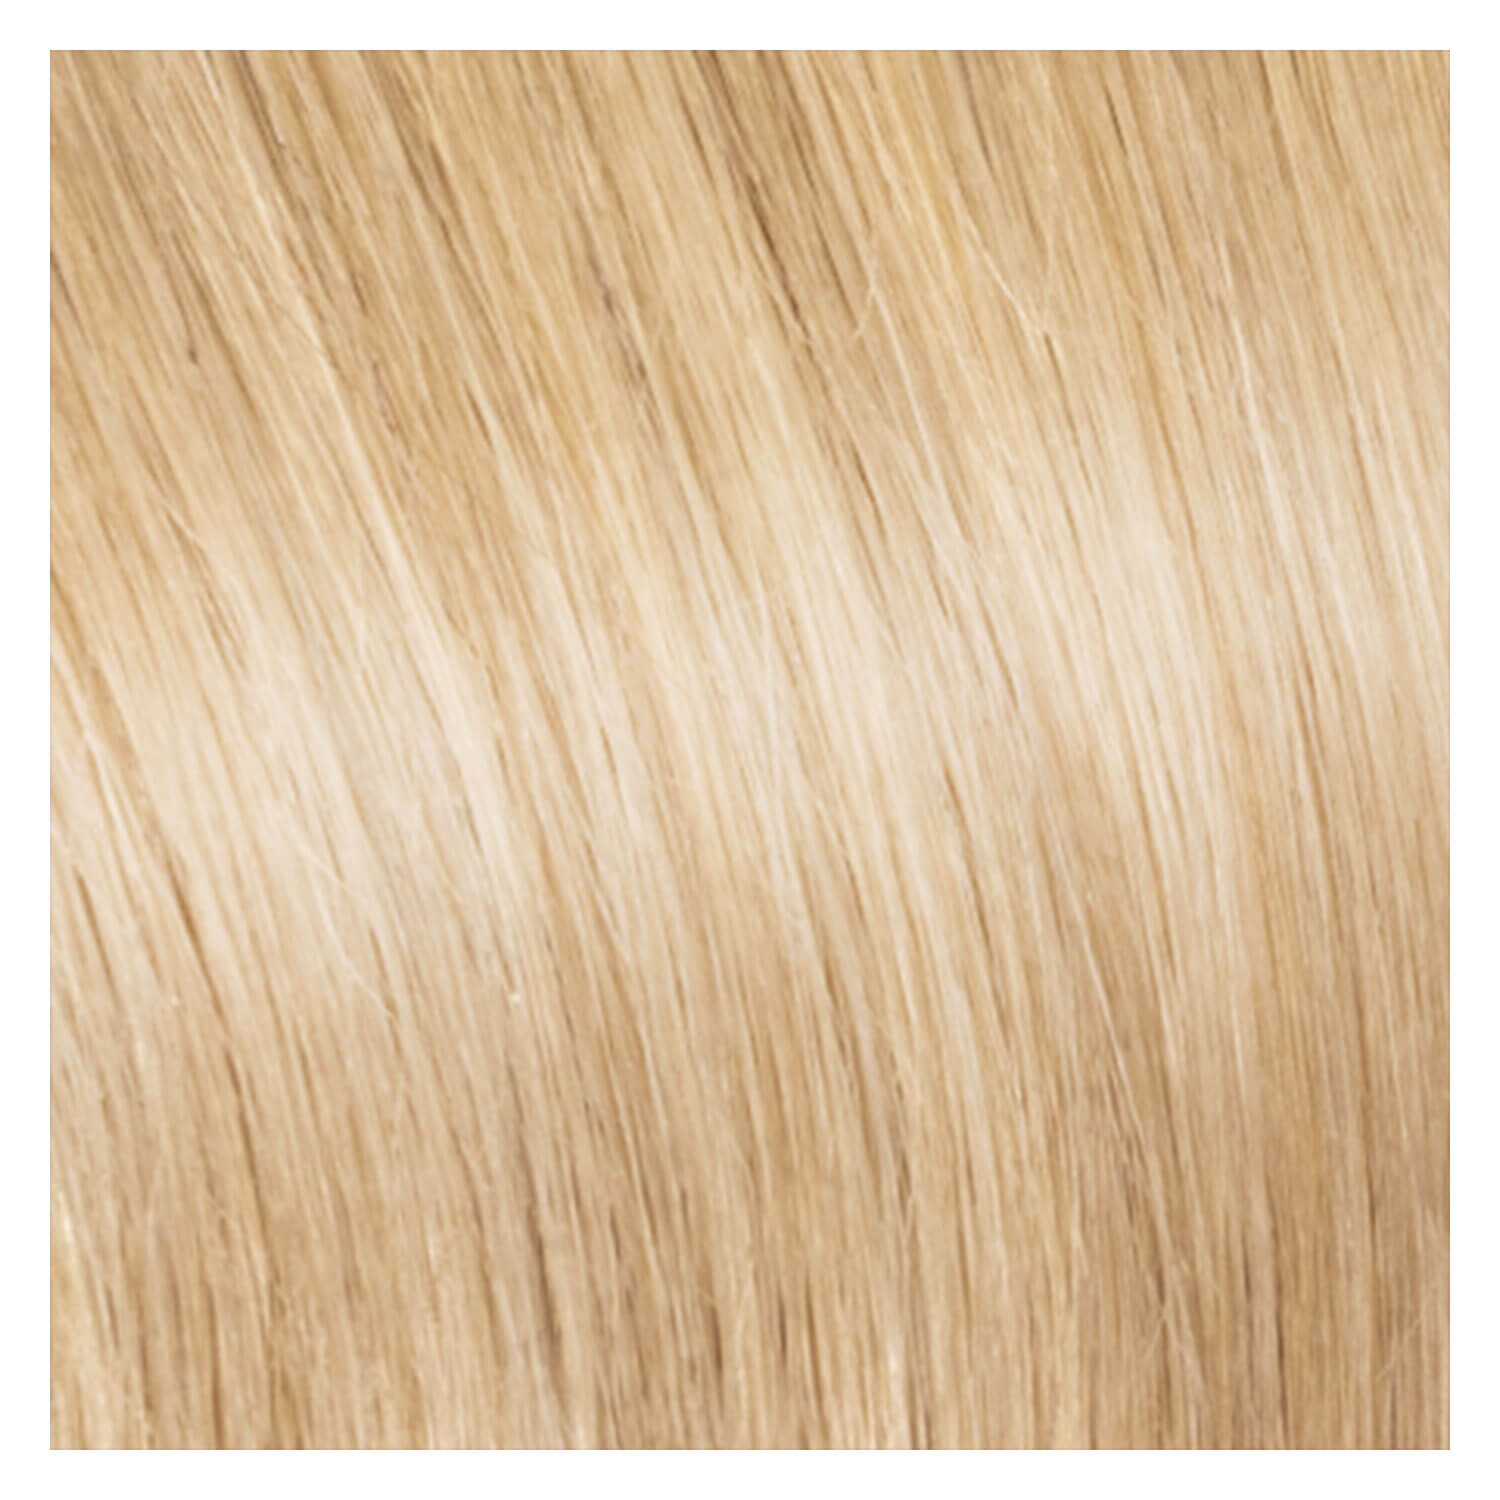 SHE Clip In-System Hair Extensions - DB2 Hellblond 50/55cm/6cm